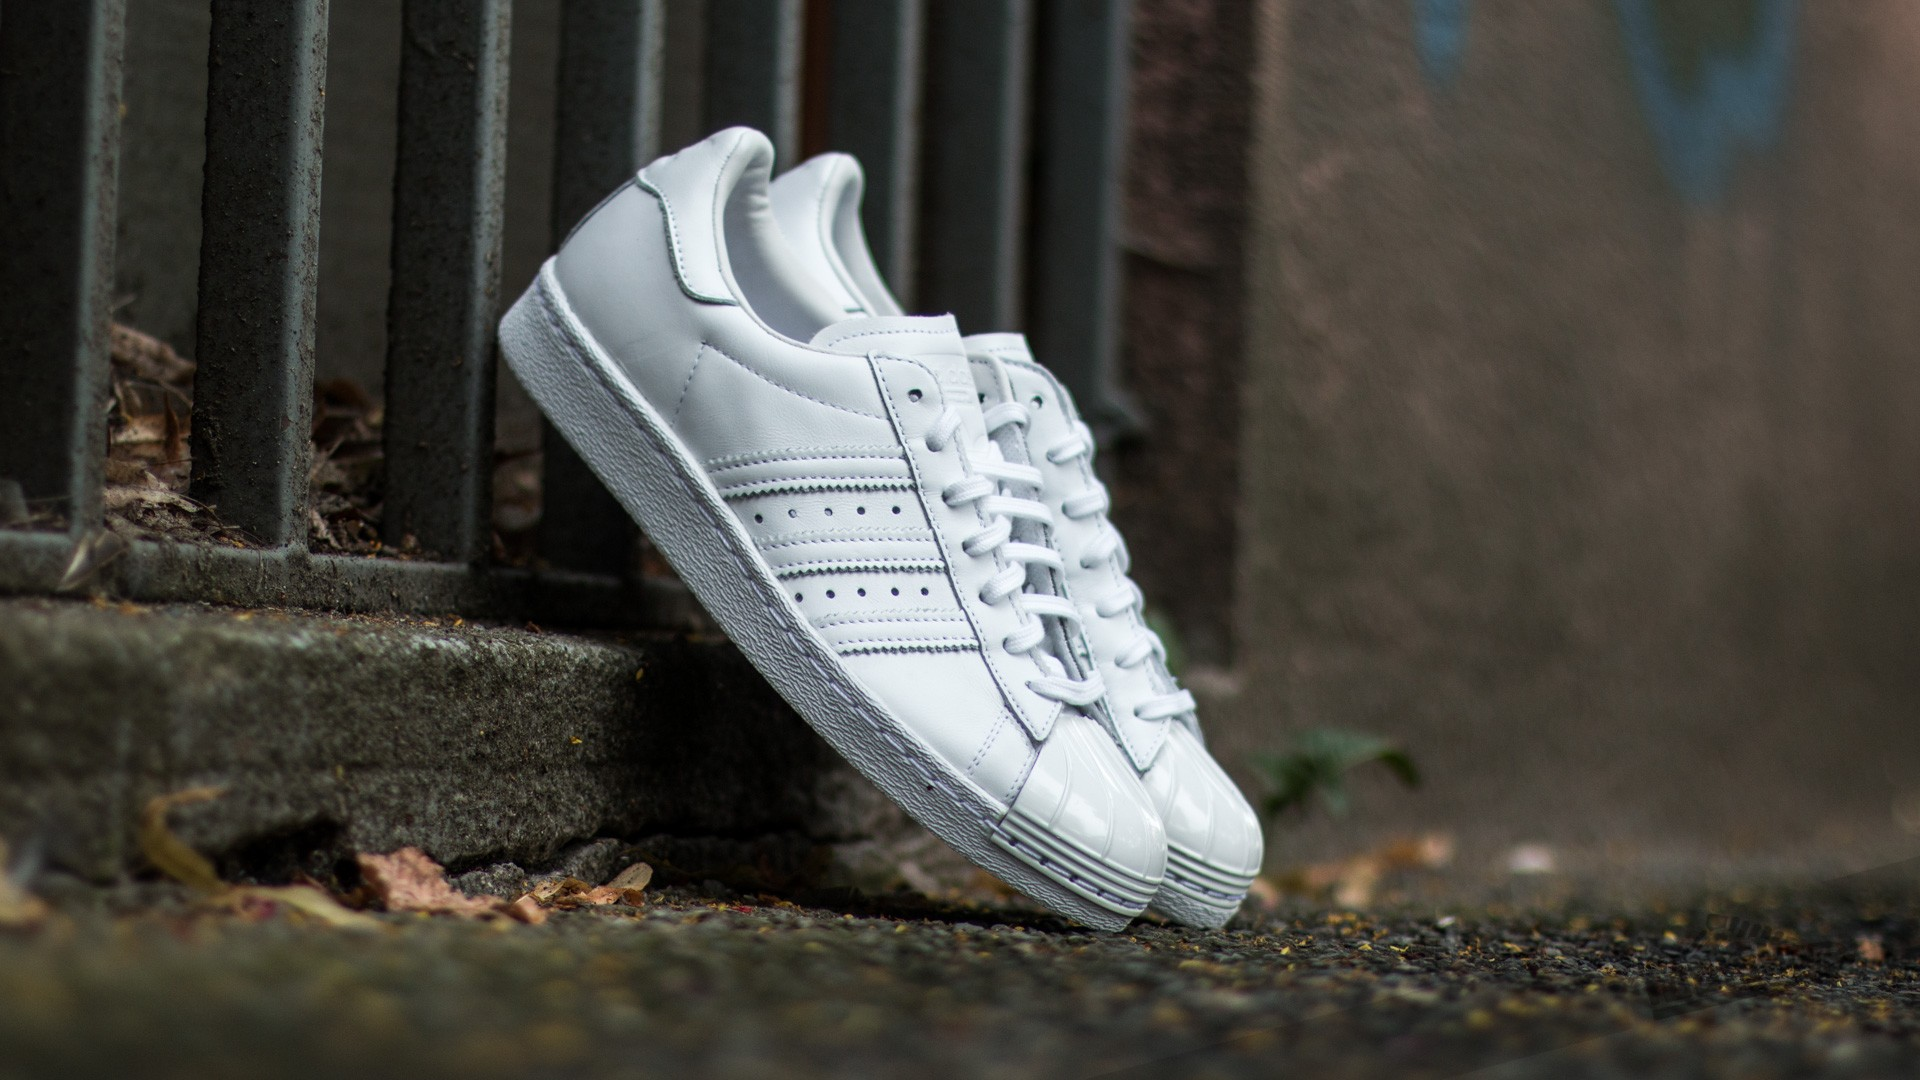 adidas Superstar 80s Metal Toe W Ftw White/ Ftw White/ Core Black Footshop – FR